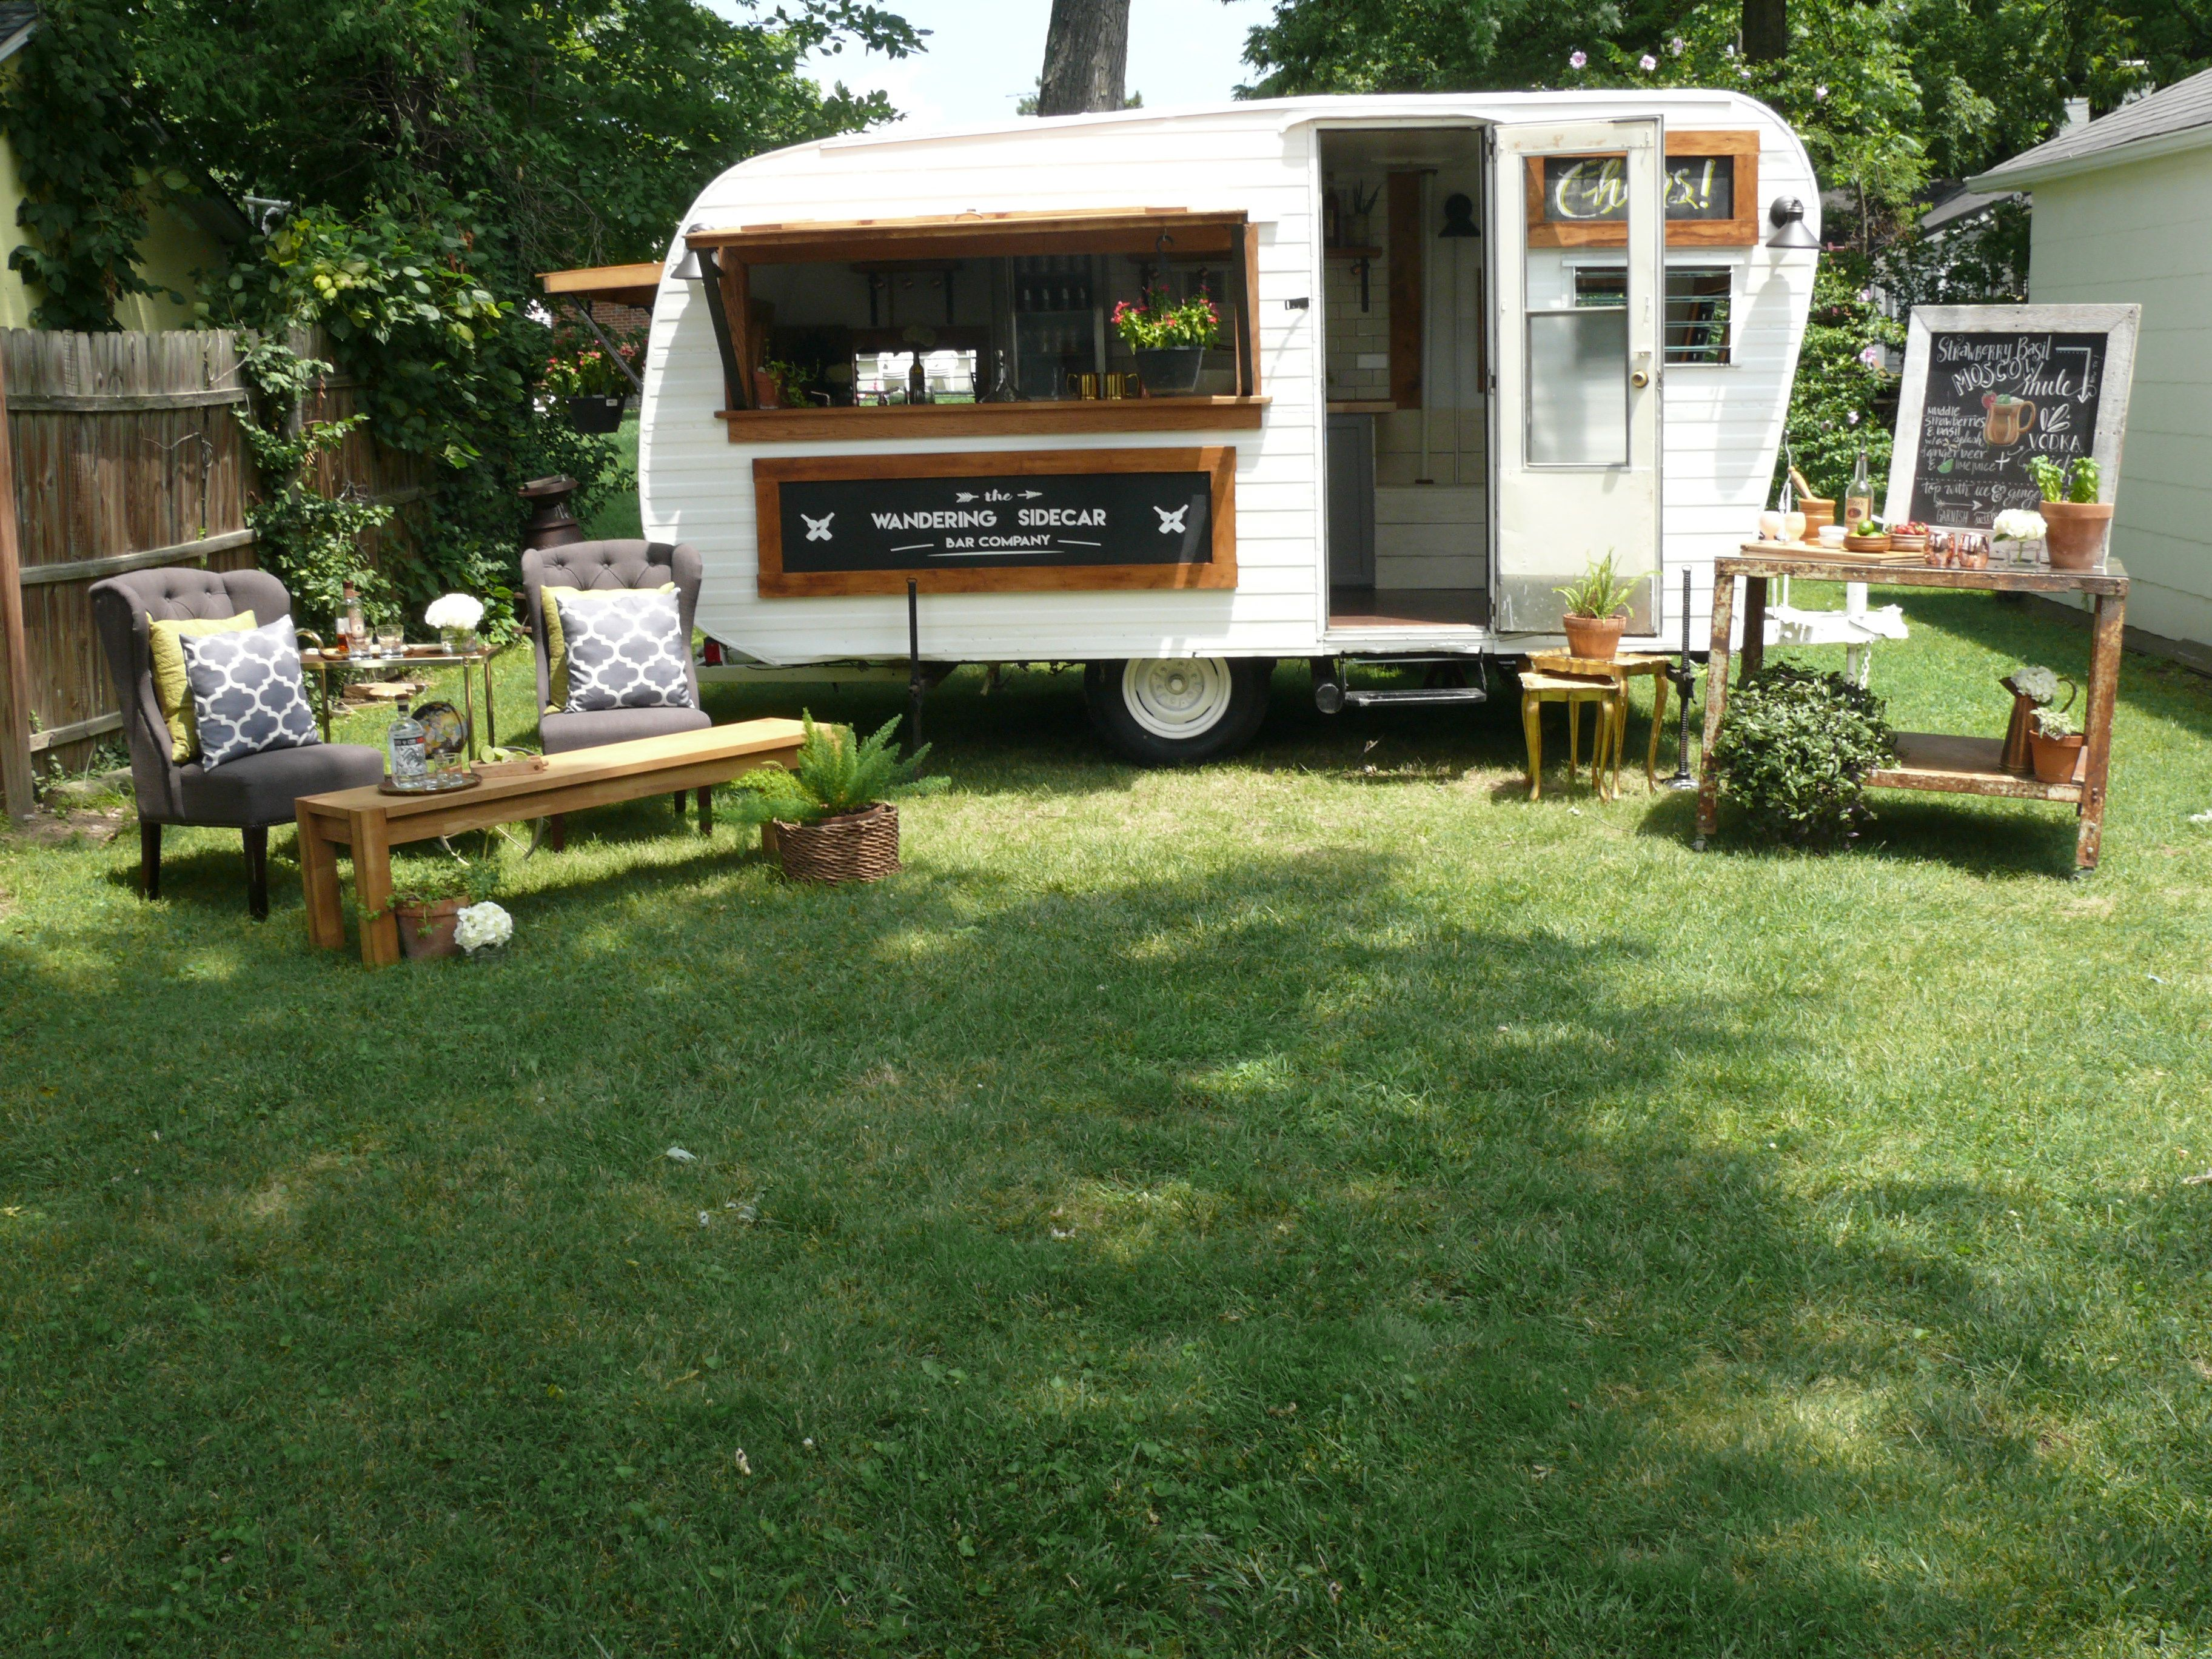 the wandering sidecar bar company offers two mobile bars for hire